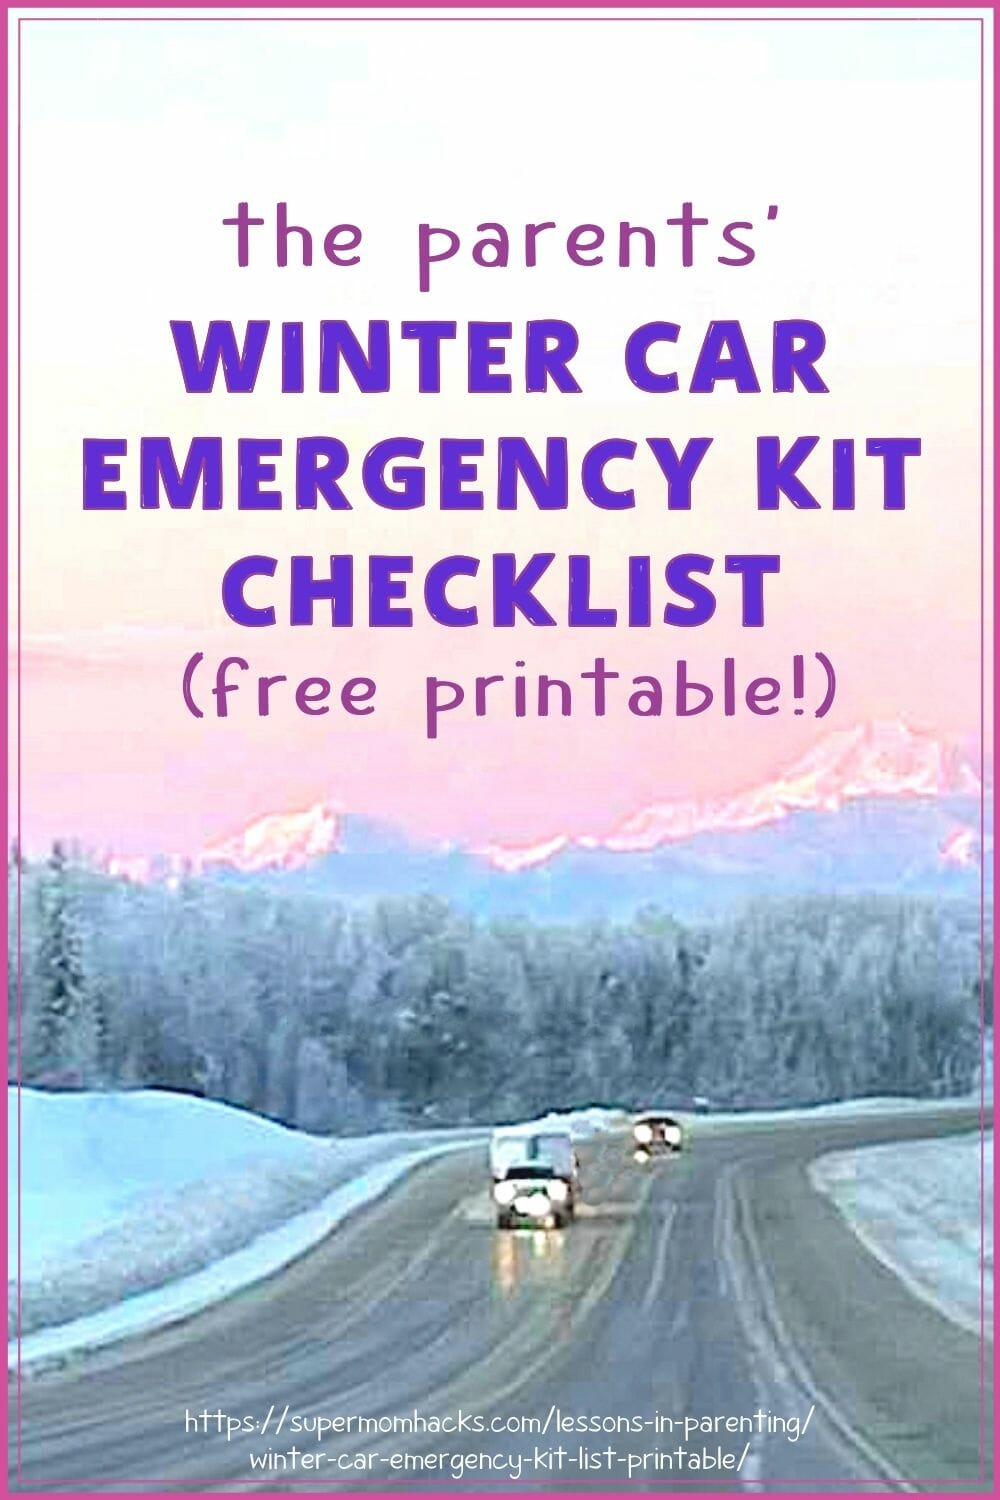 Is your family car ready for winter driving? It's never too late to prepare your winter car emergency kit; this checklist will help. Parents' Winter Car Emergency Kit Checklist (Free Printable)/SuperMomHacks | preparing an emergency kit for your car | emergency car survival kit list | basic car emergency kit list | how to make an emergency kit for your car | winter car survival kit list | winter driving safety | winter driving safety tips | winter driving preparedness checklist | winter car kit